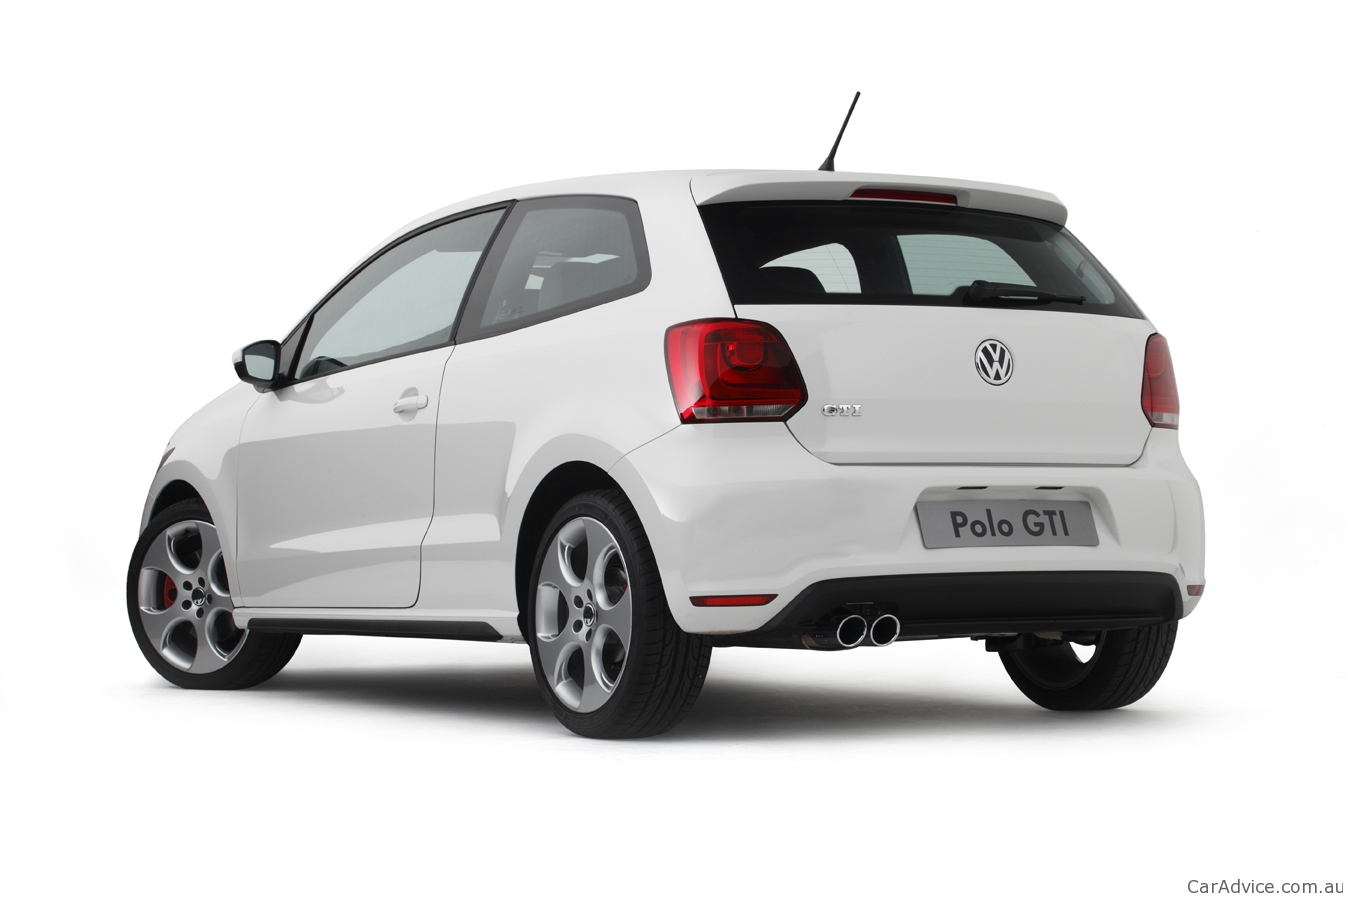 volkswagen polo gti review caradvice. Black Bedroom Furniture Sets. Home Design Ideas